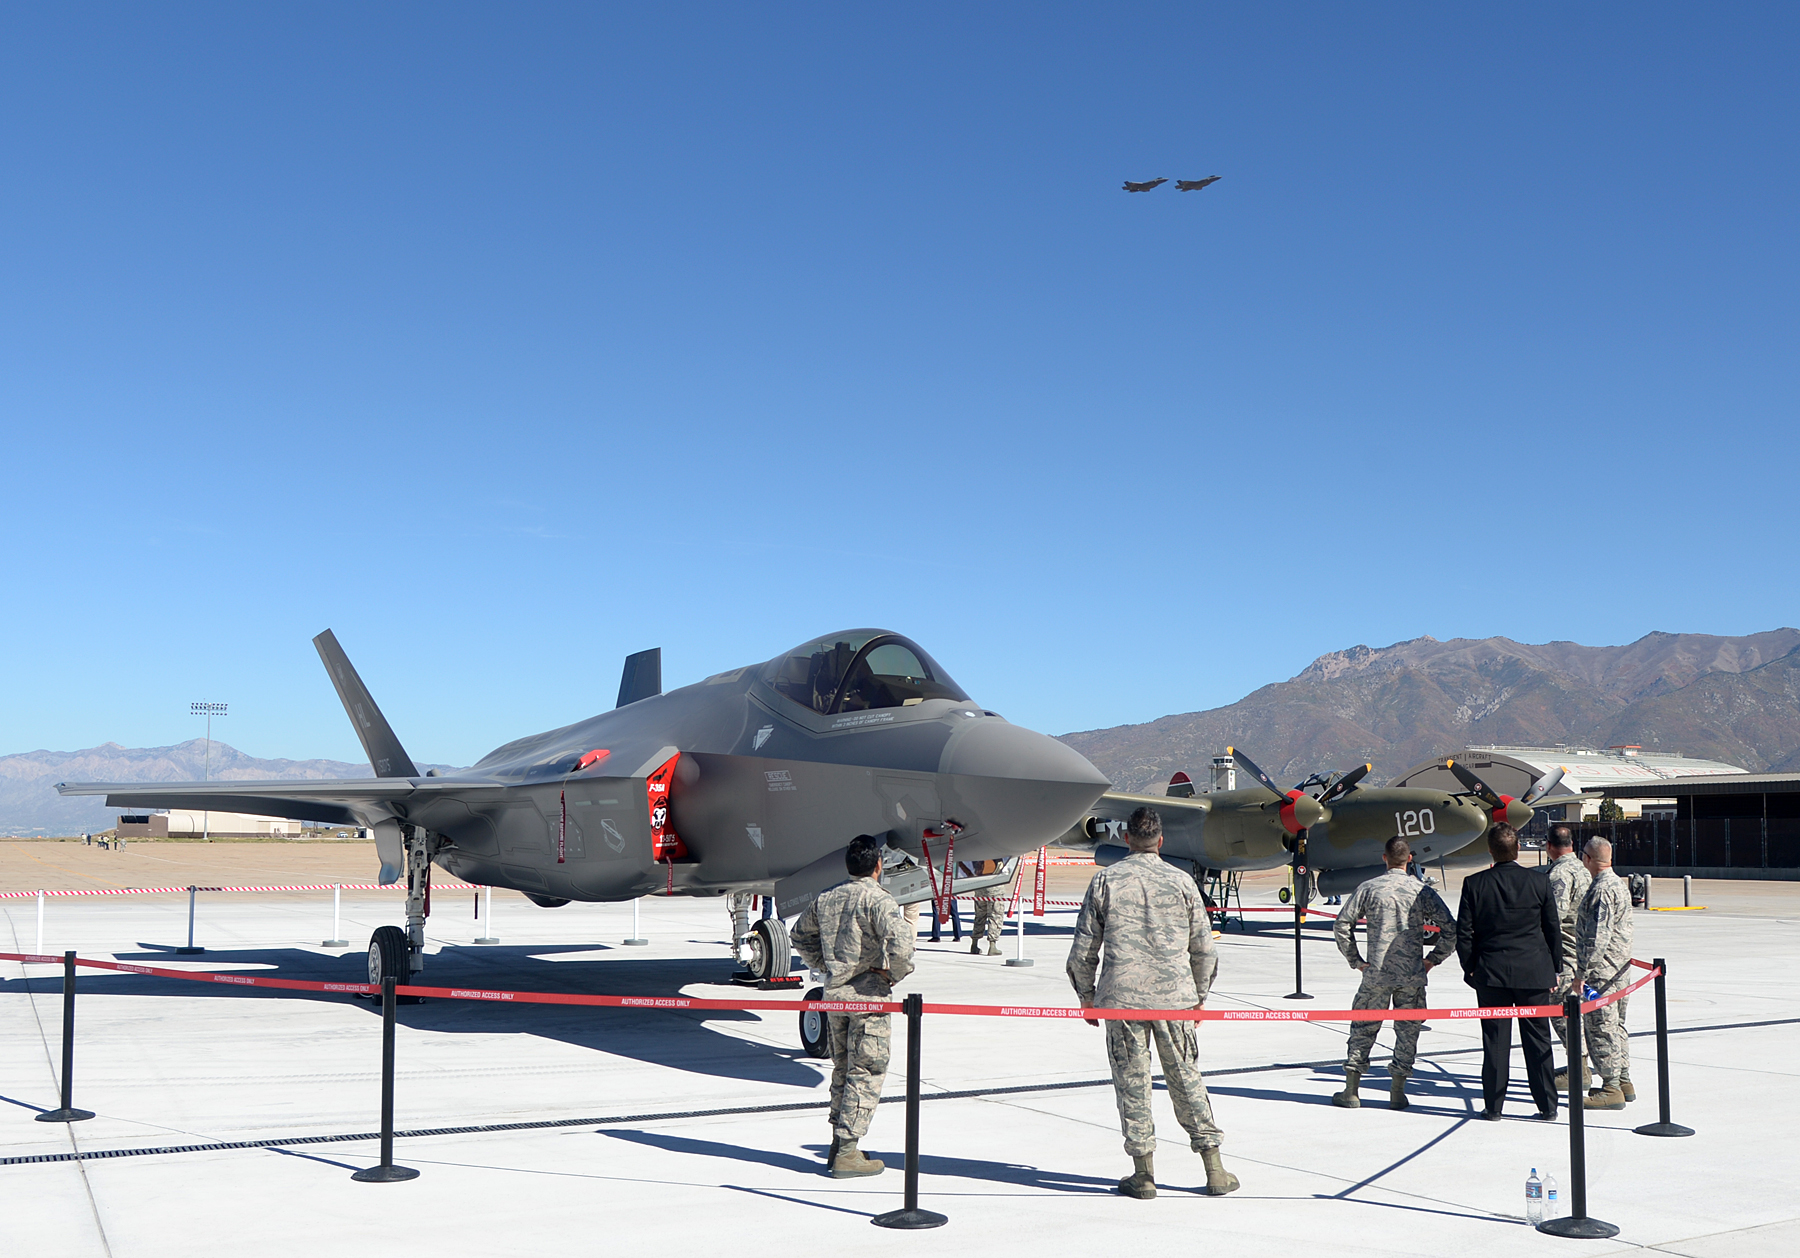 Team Hill personnel watch as two F-35A Lightning II aircraft fly overhead following an F-35 unveiling ceremony at Hill Air Force Base, commemorating the beginning of a new era in combat air power at Hill. The 388th and 419th Fighter Wings at Hill were selected as the first Air Force units to fly combat-coded F-35s. Hill Air Force Base, Utah, Oct. 14, 2015 | U.S. Air Force photo by Alex R. Lloyd, St. George News